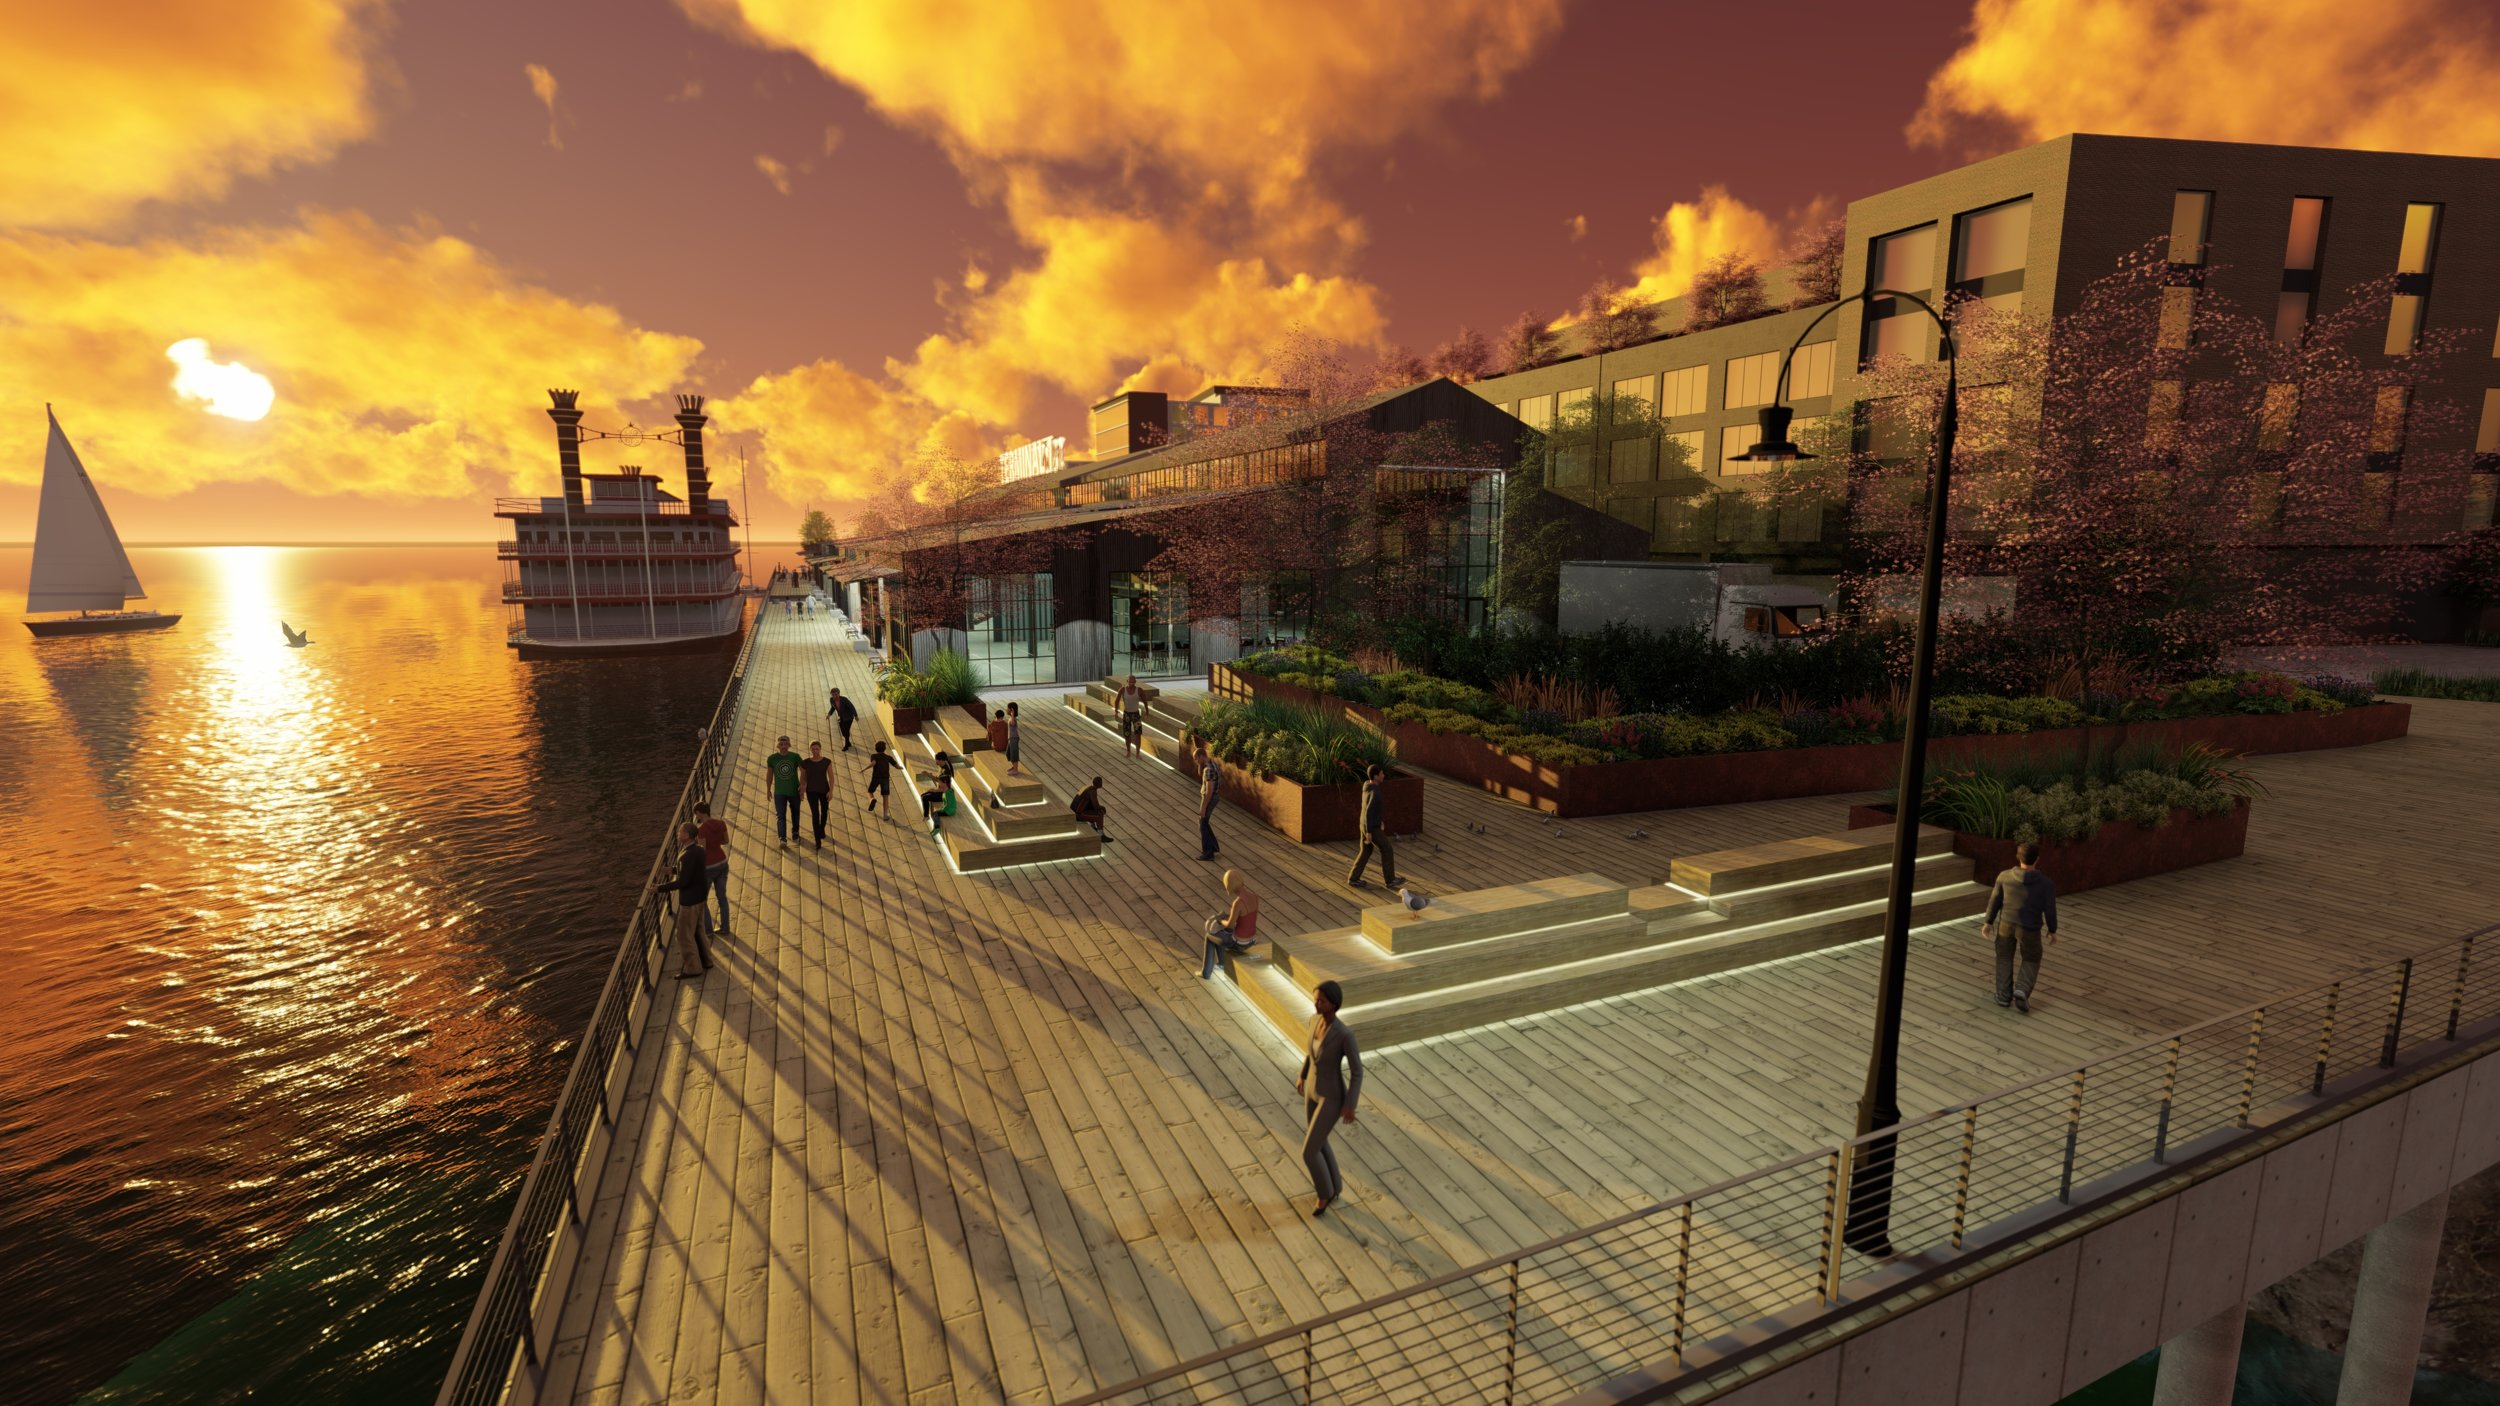 A possible future for Terminal 1, at sunset